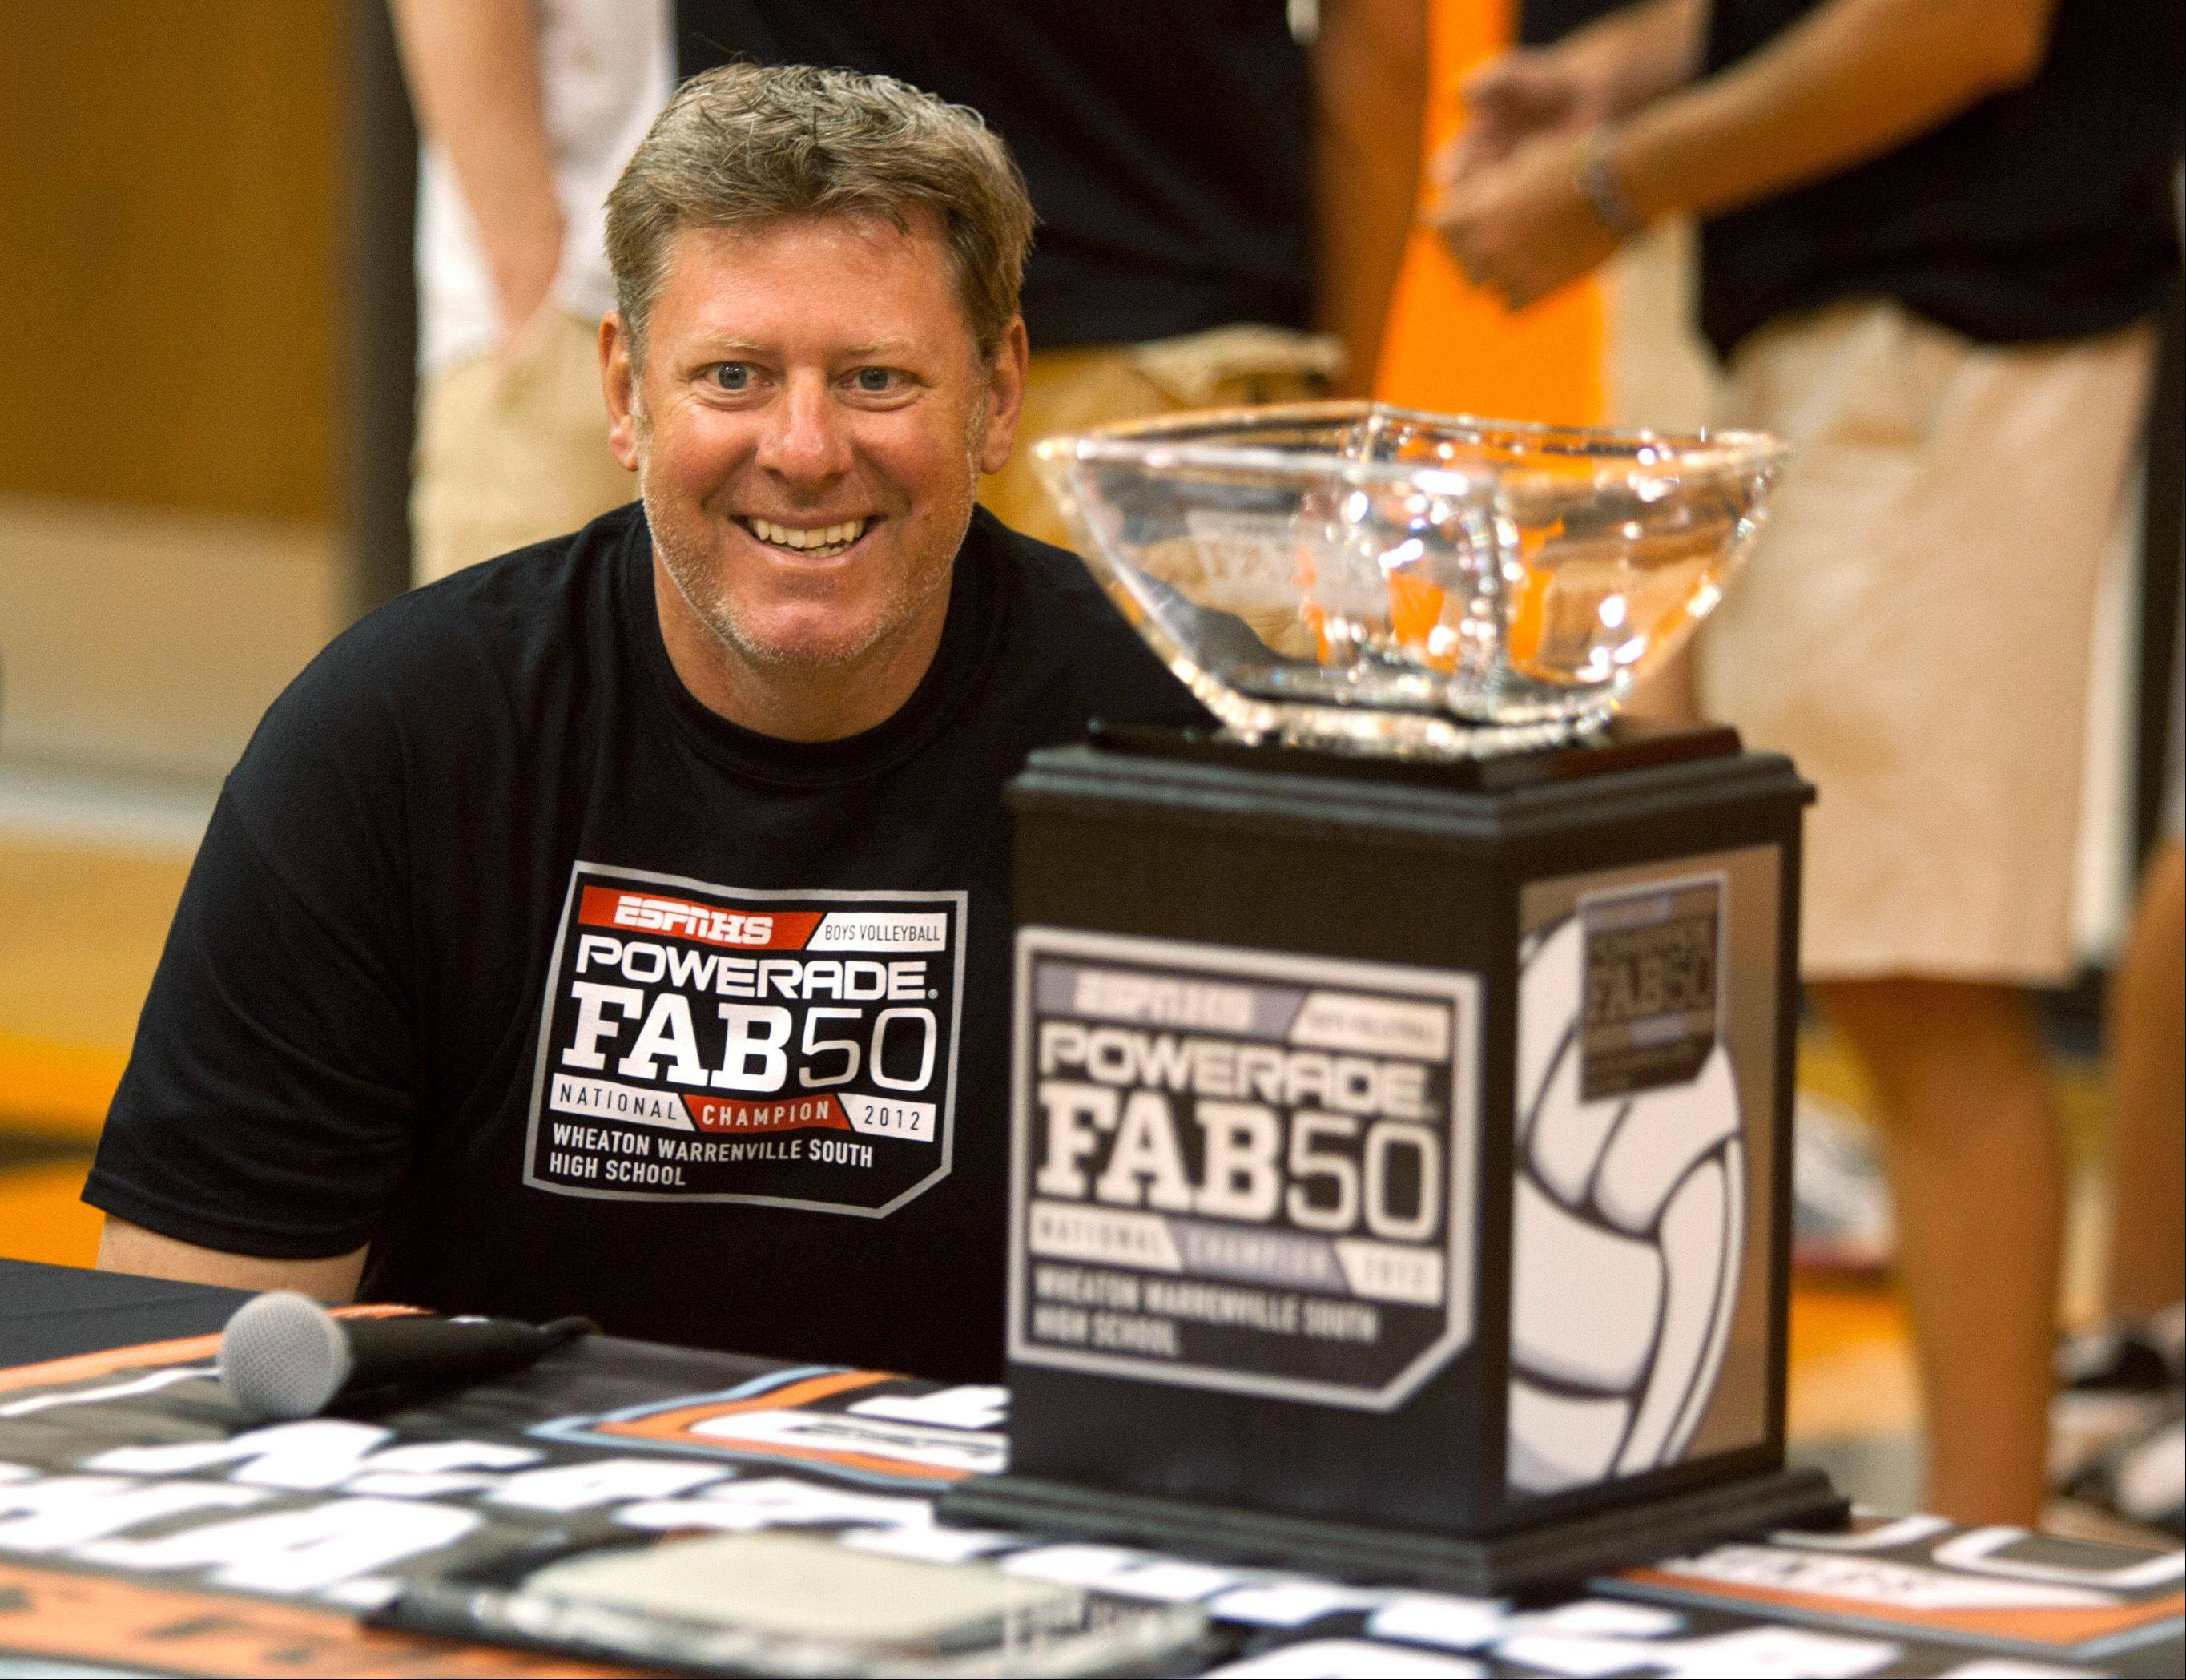 Head coach Bill Schreier is all smiles during an assembly Friday honoring the Wheaton Warrenville South boys volleyball team with a national championship.